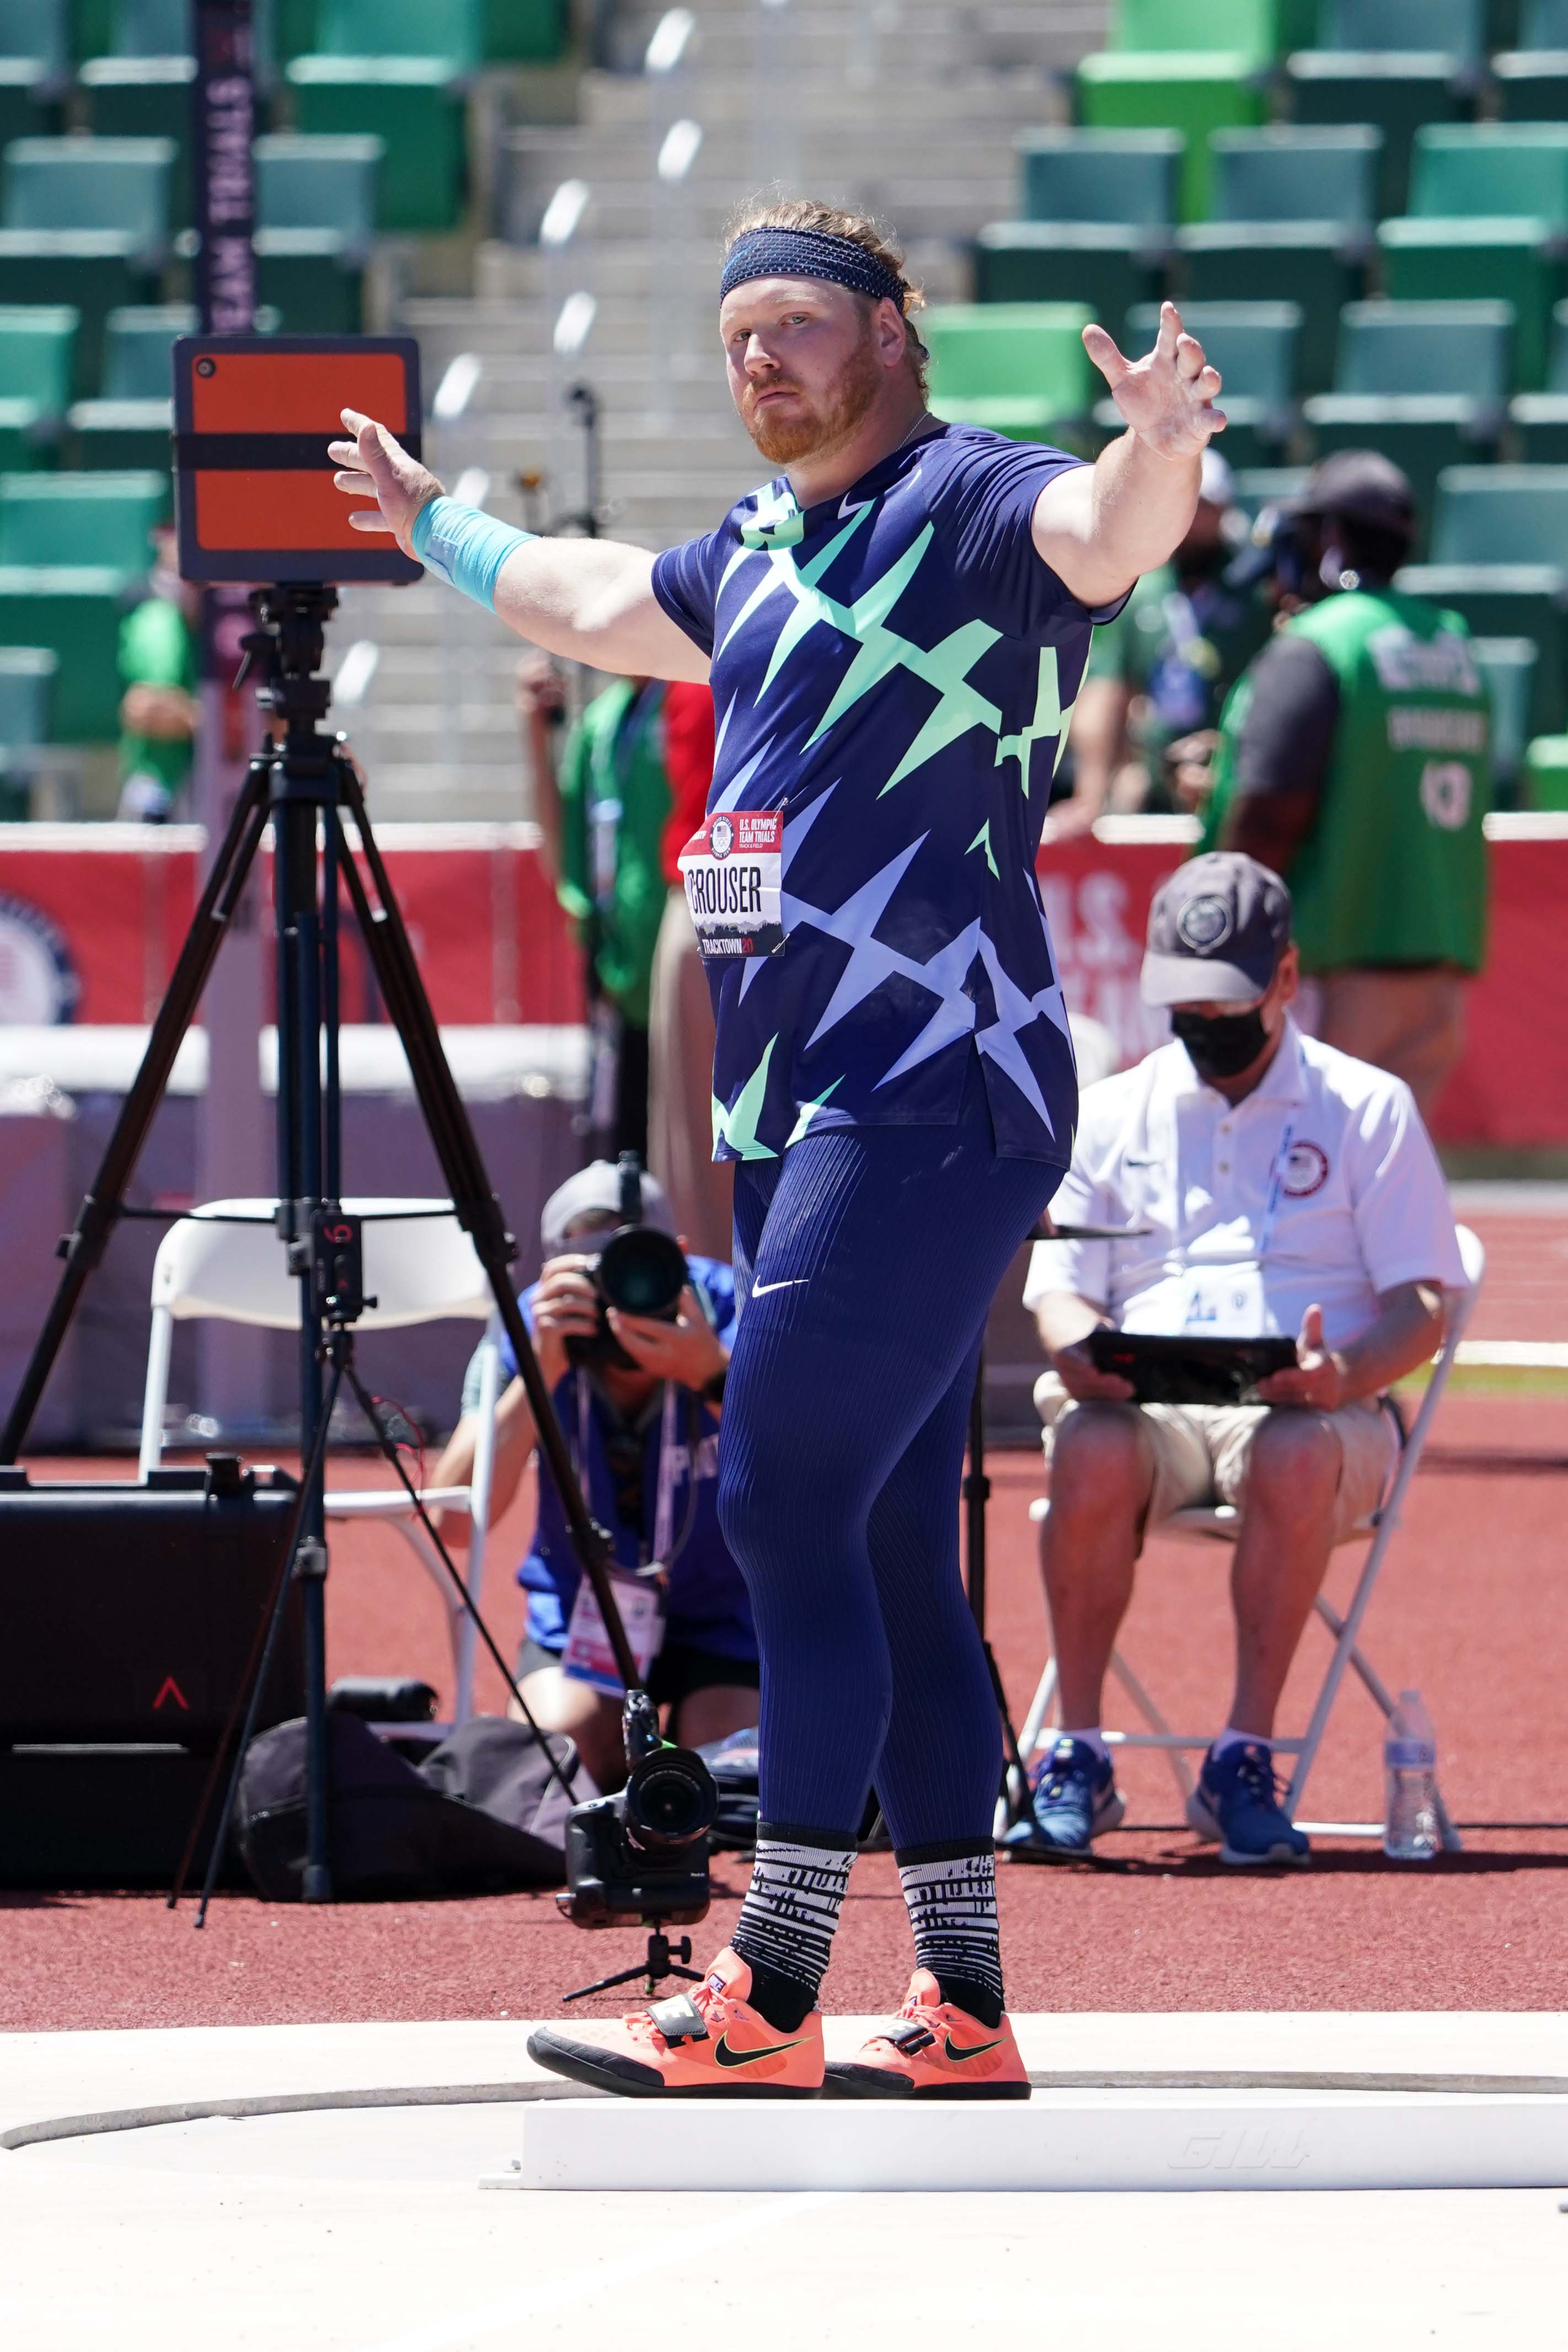 Jun 18, 2021; Eugene, OR, USA; Ryan Crouser celebrates after throwing a meet-record 75-2 (22.92M) for the top mark in the shot put qualifying  during the US Olympic Team Trials at Hayward Field. Mandatory Credit: Kirby Lee-USA TODAY Sports